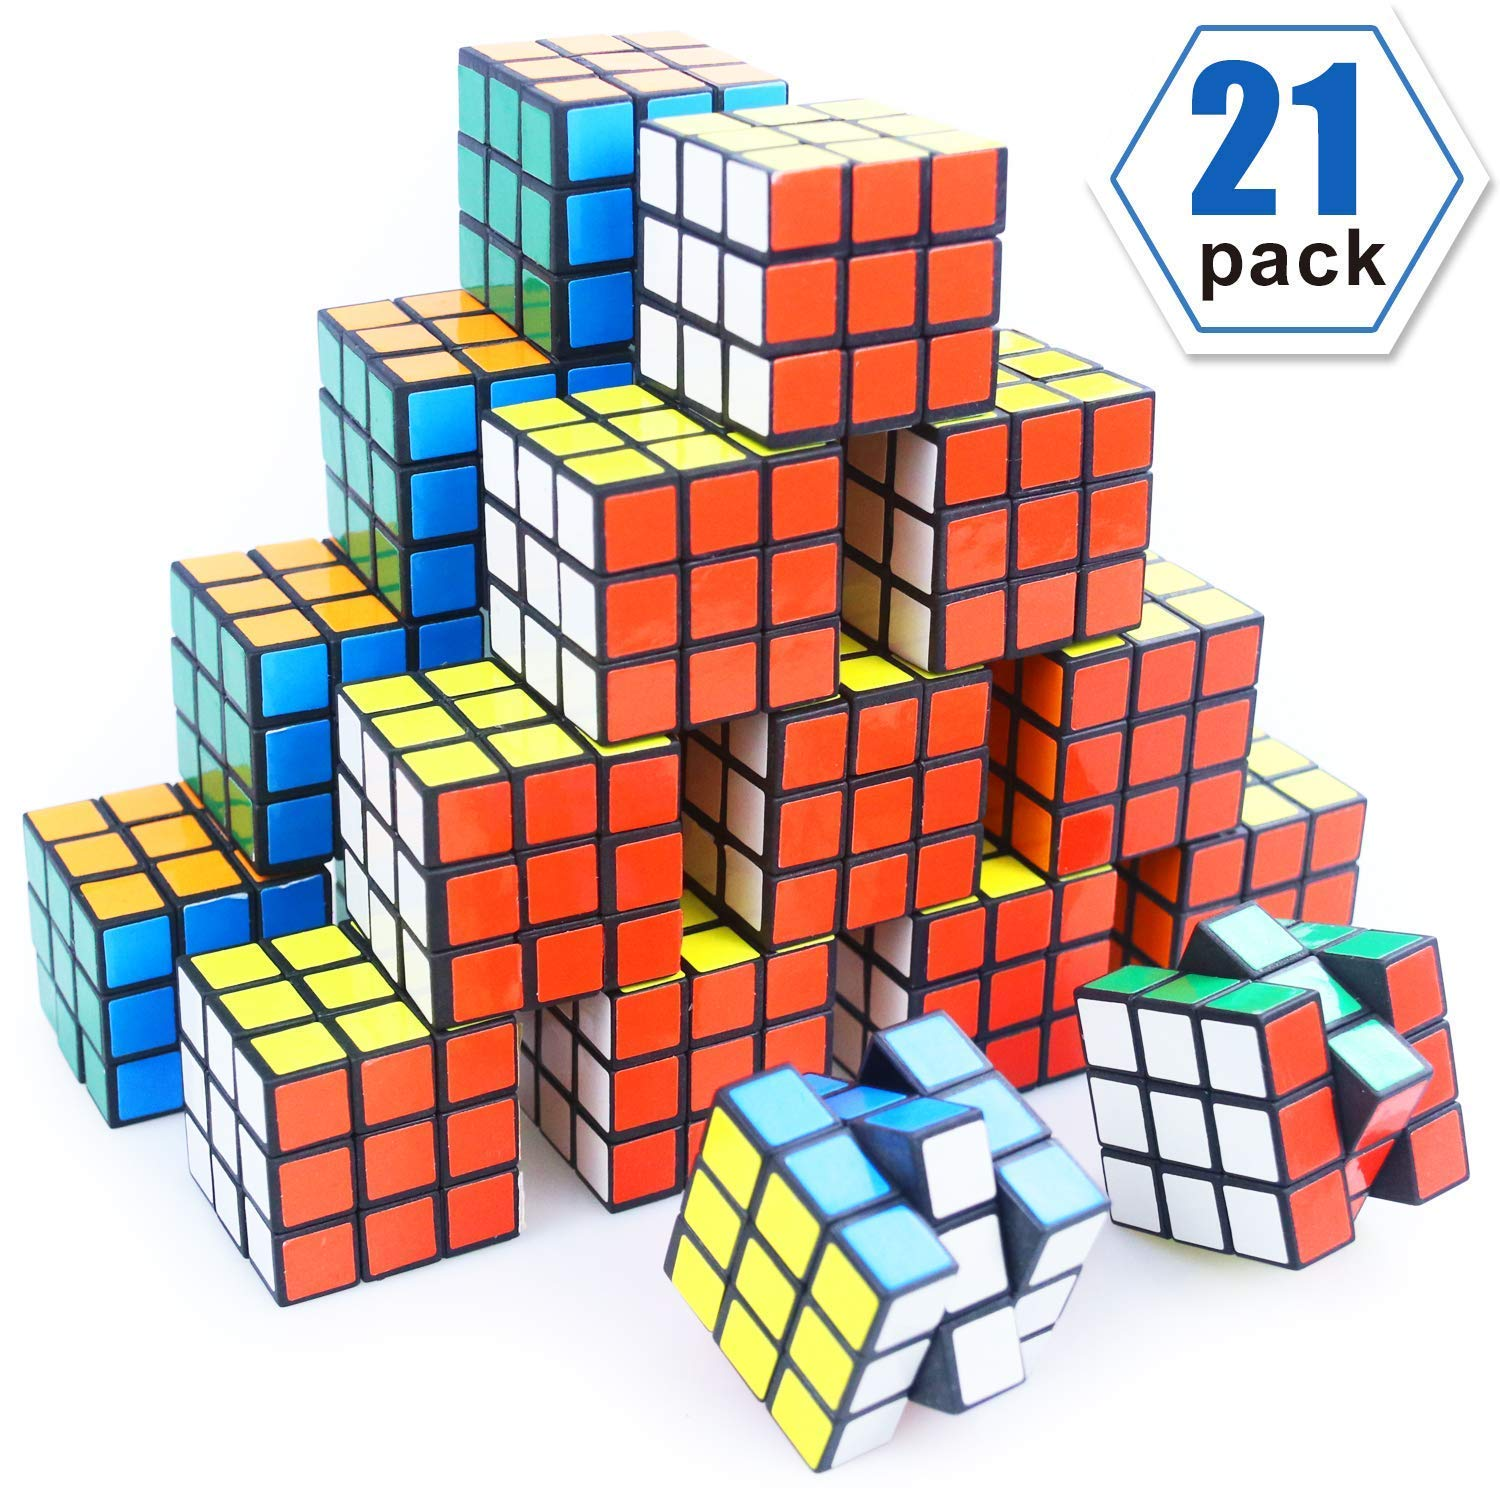 Mini Cube, Puzzle Party Toy, Eco-Friendly Material with Vivid Colors,Party Favor School Supplies Puzzle Game Set for Boy Girl Kid Child, Magic Cube Goody Bag Filler Birthday Gift, Pack of 21 by LOVIMAG